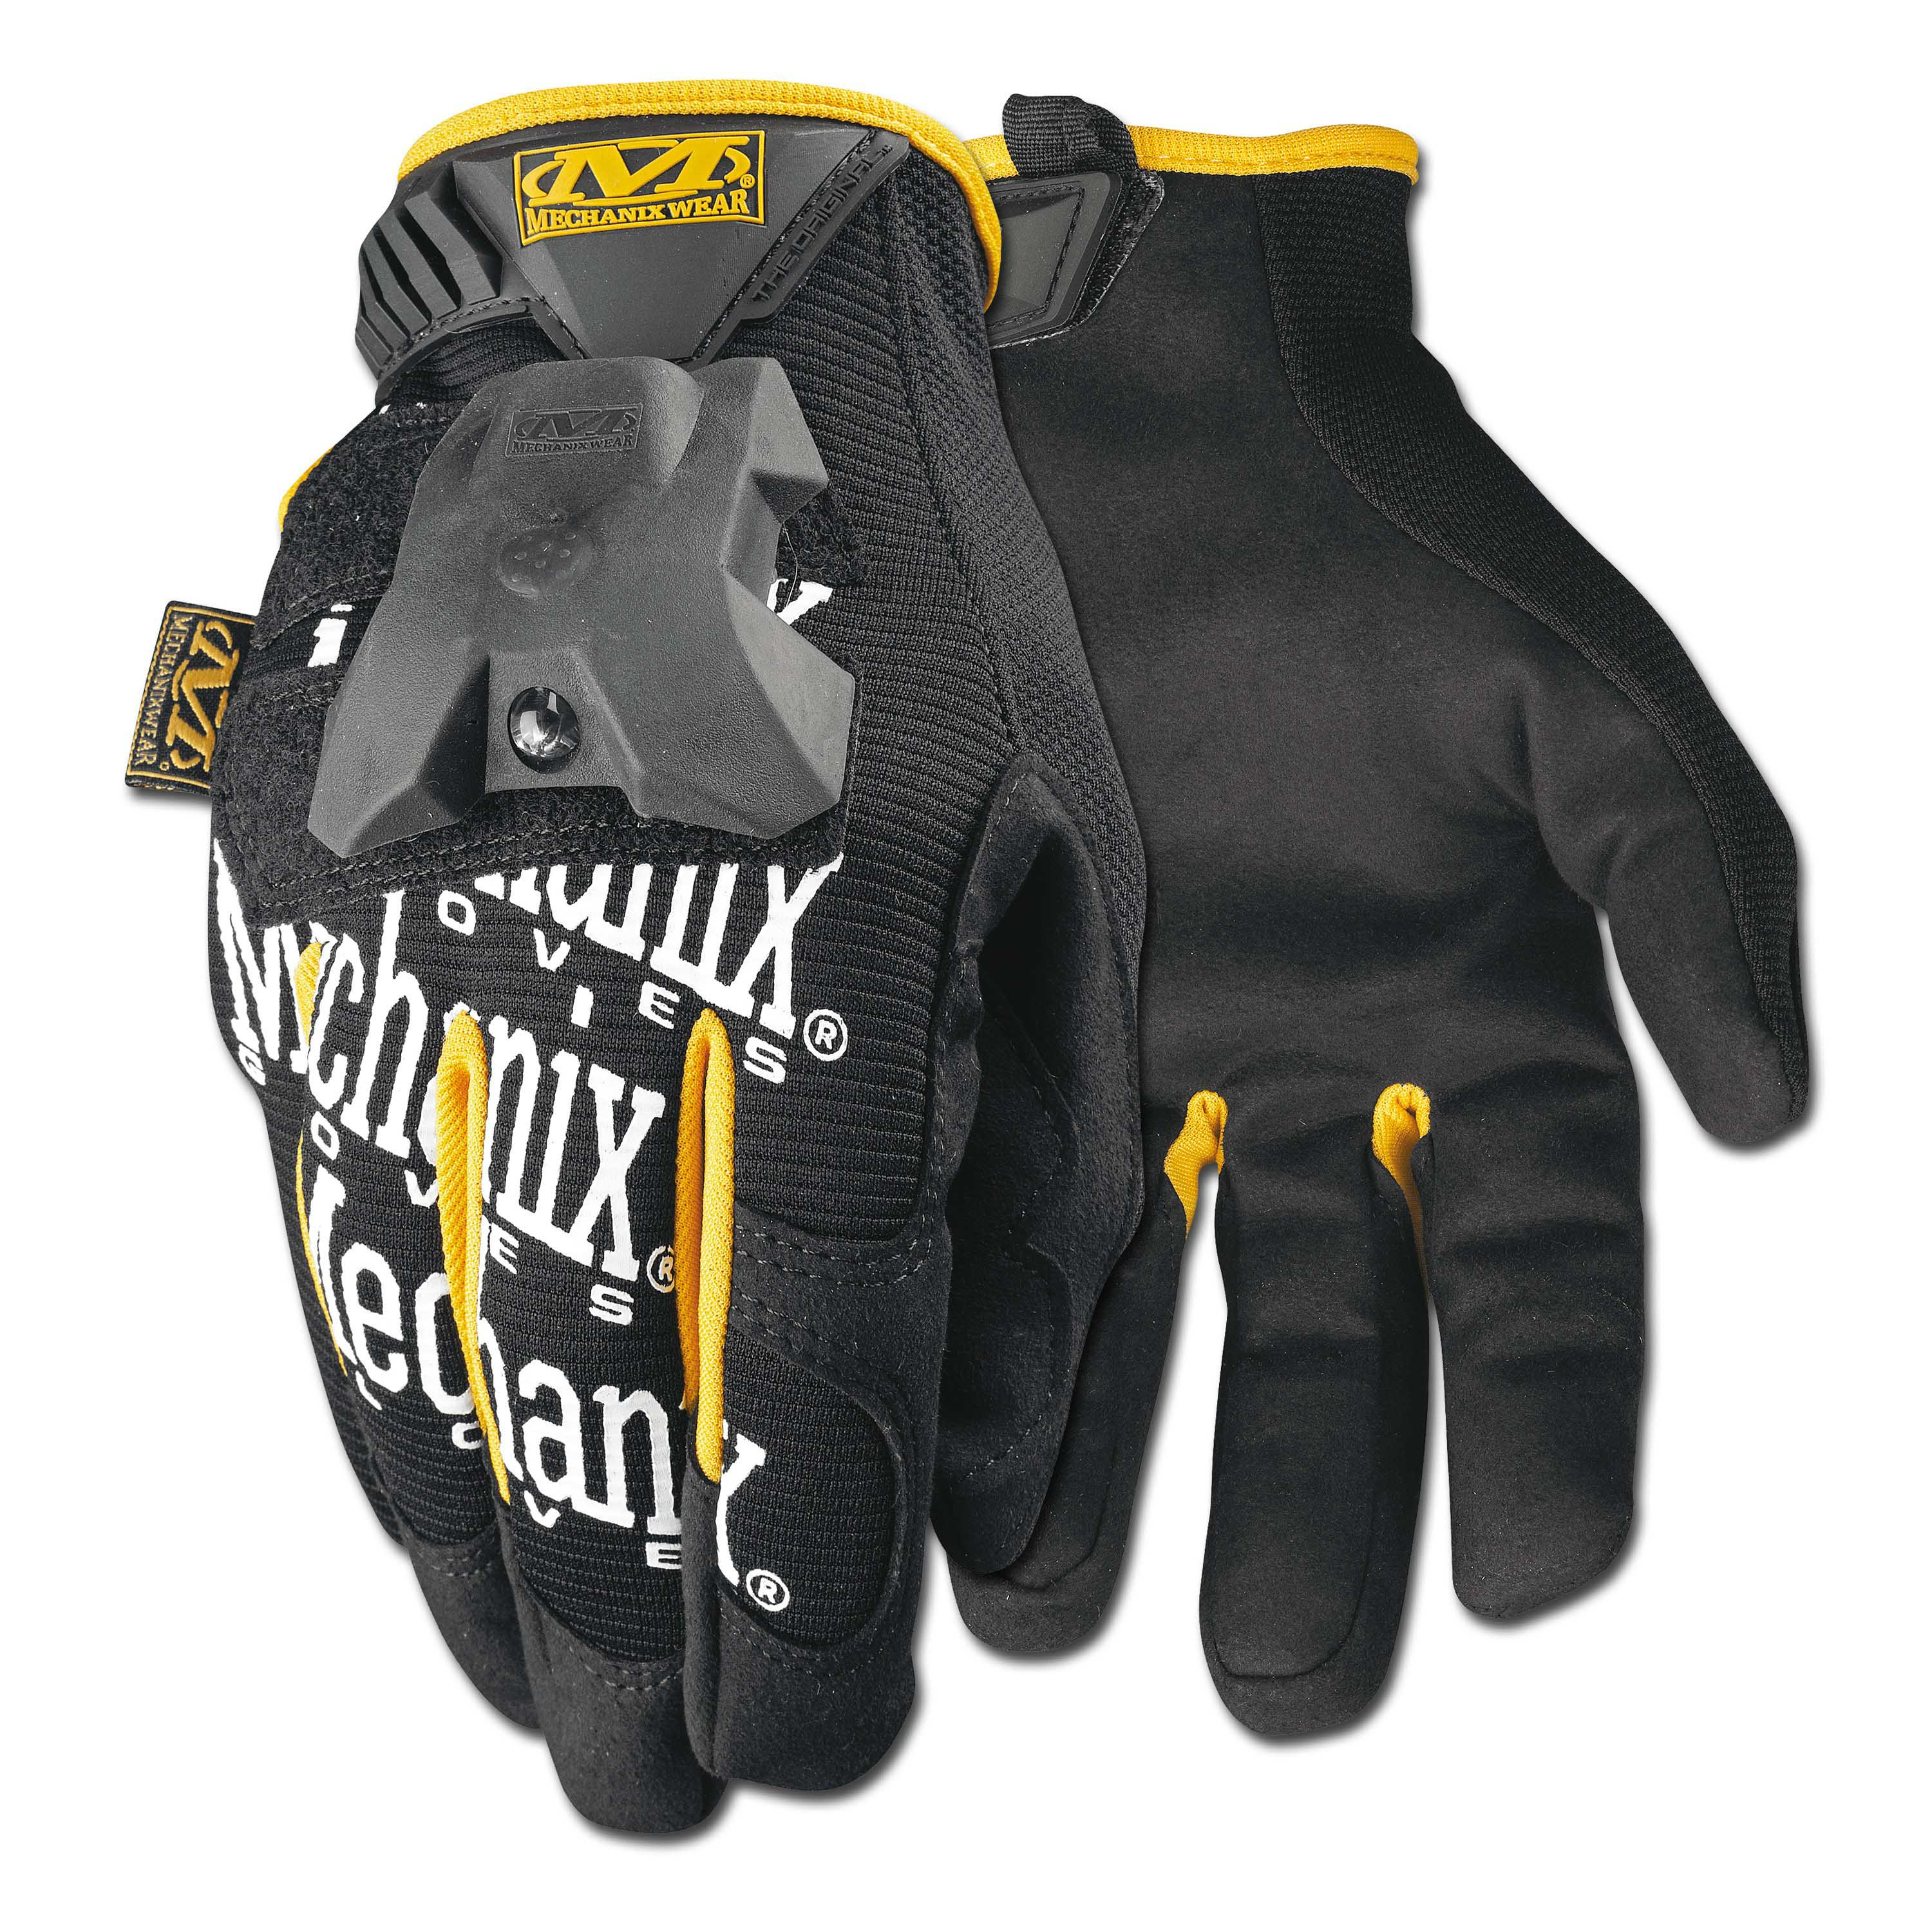 Handschuhe Mechanix Wear Original Glove light